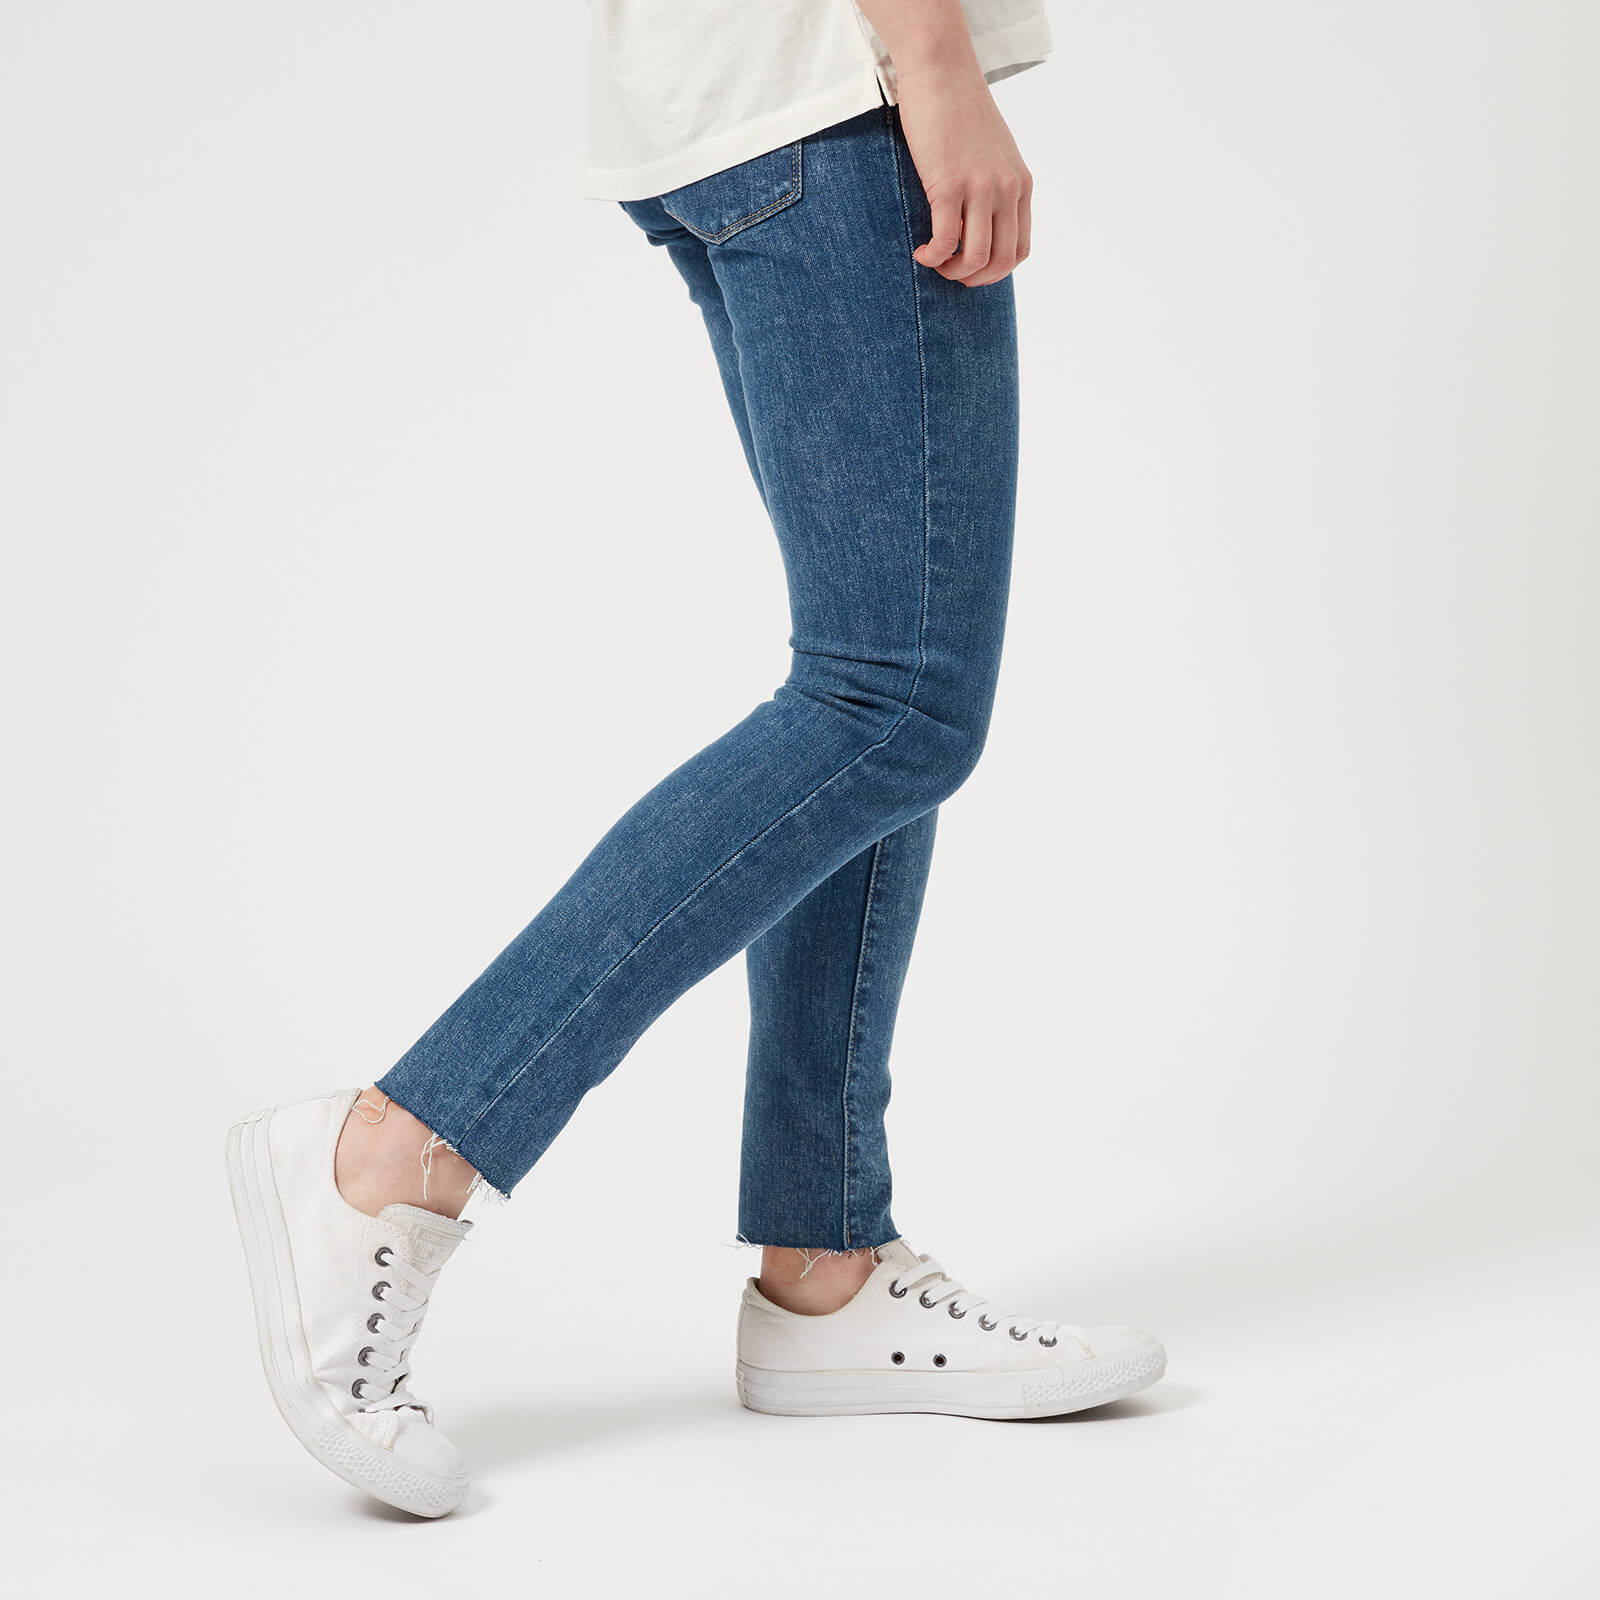 2639e929 Levi's Women's 721 High Rise Skinny Jeans - Charged Up - Free UK Delivery  over £50